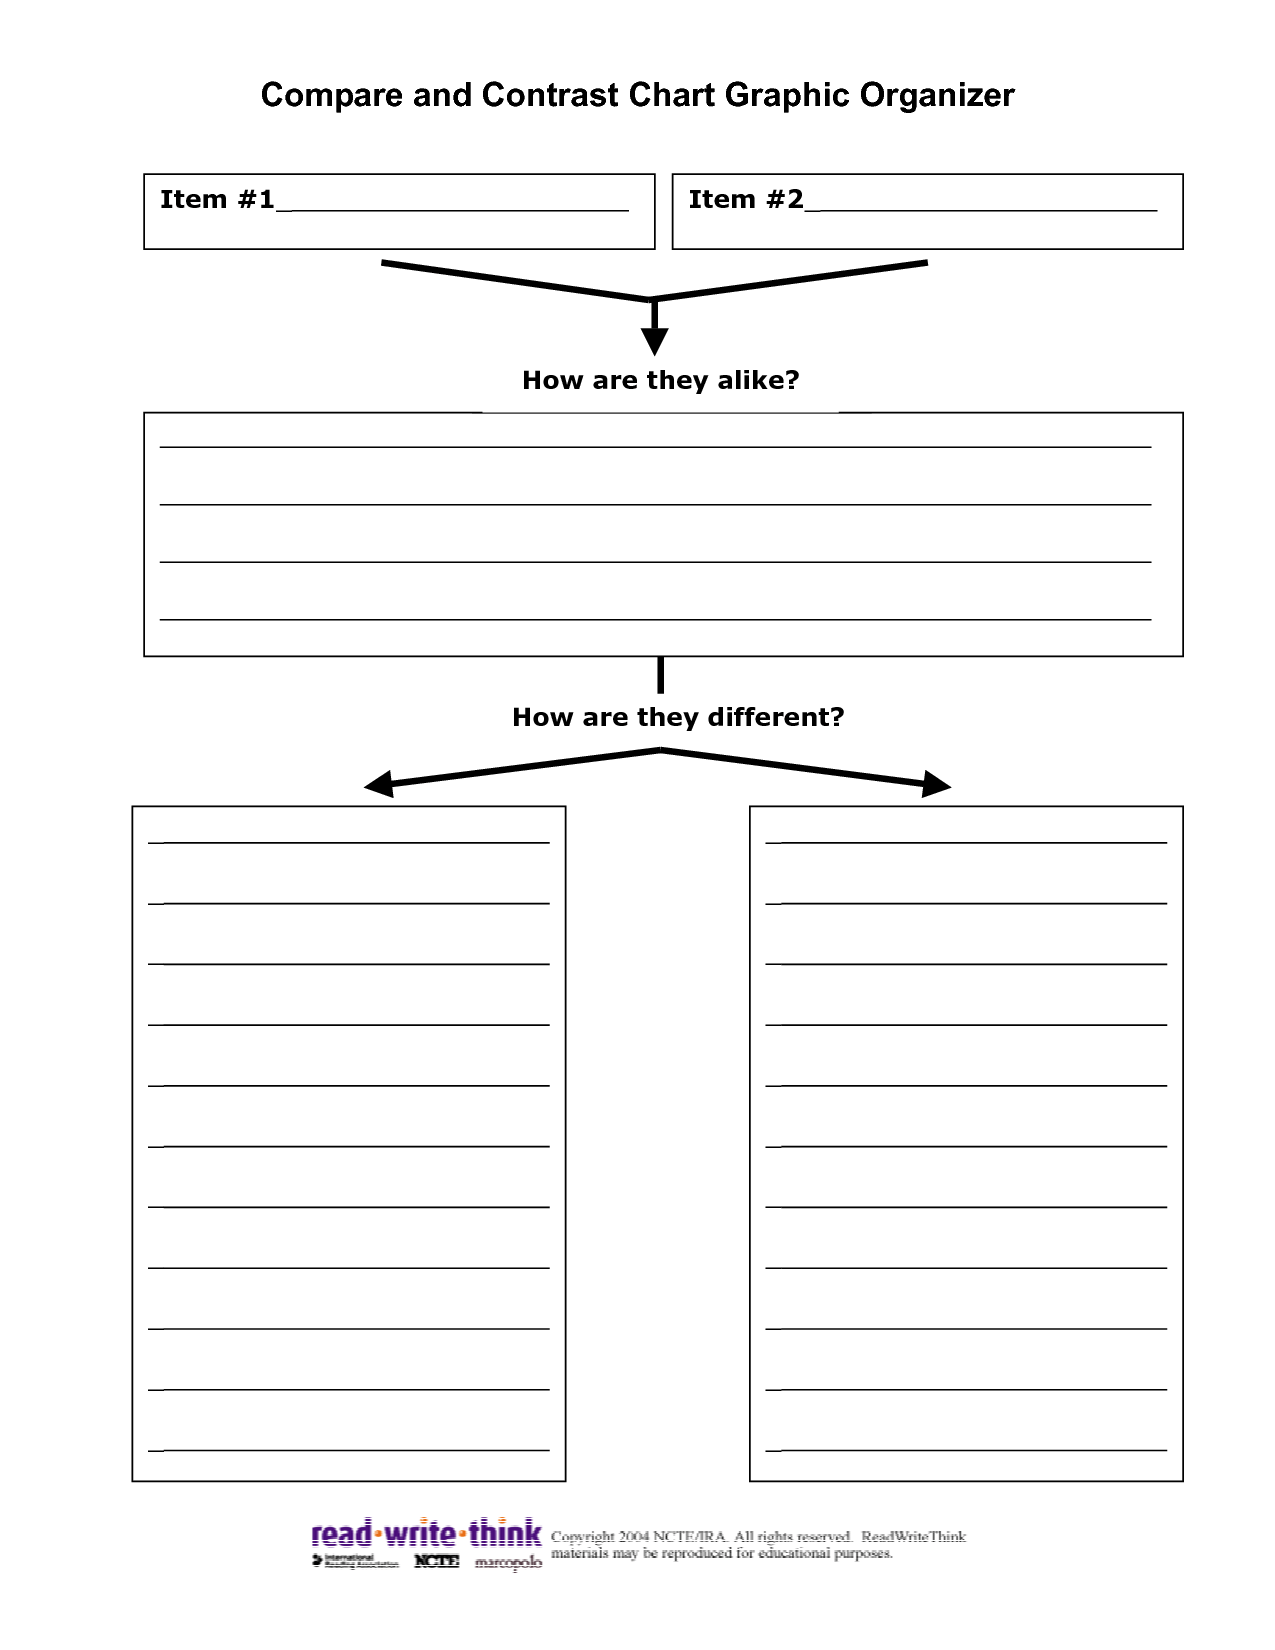 15 Best Images Of Blank Compare And Contrast Worksheets